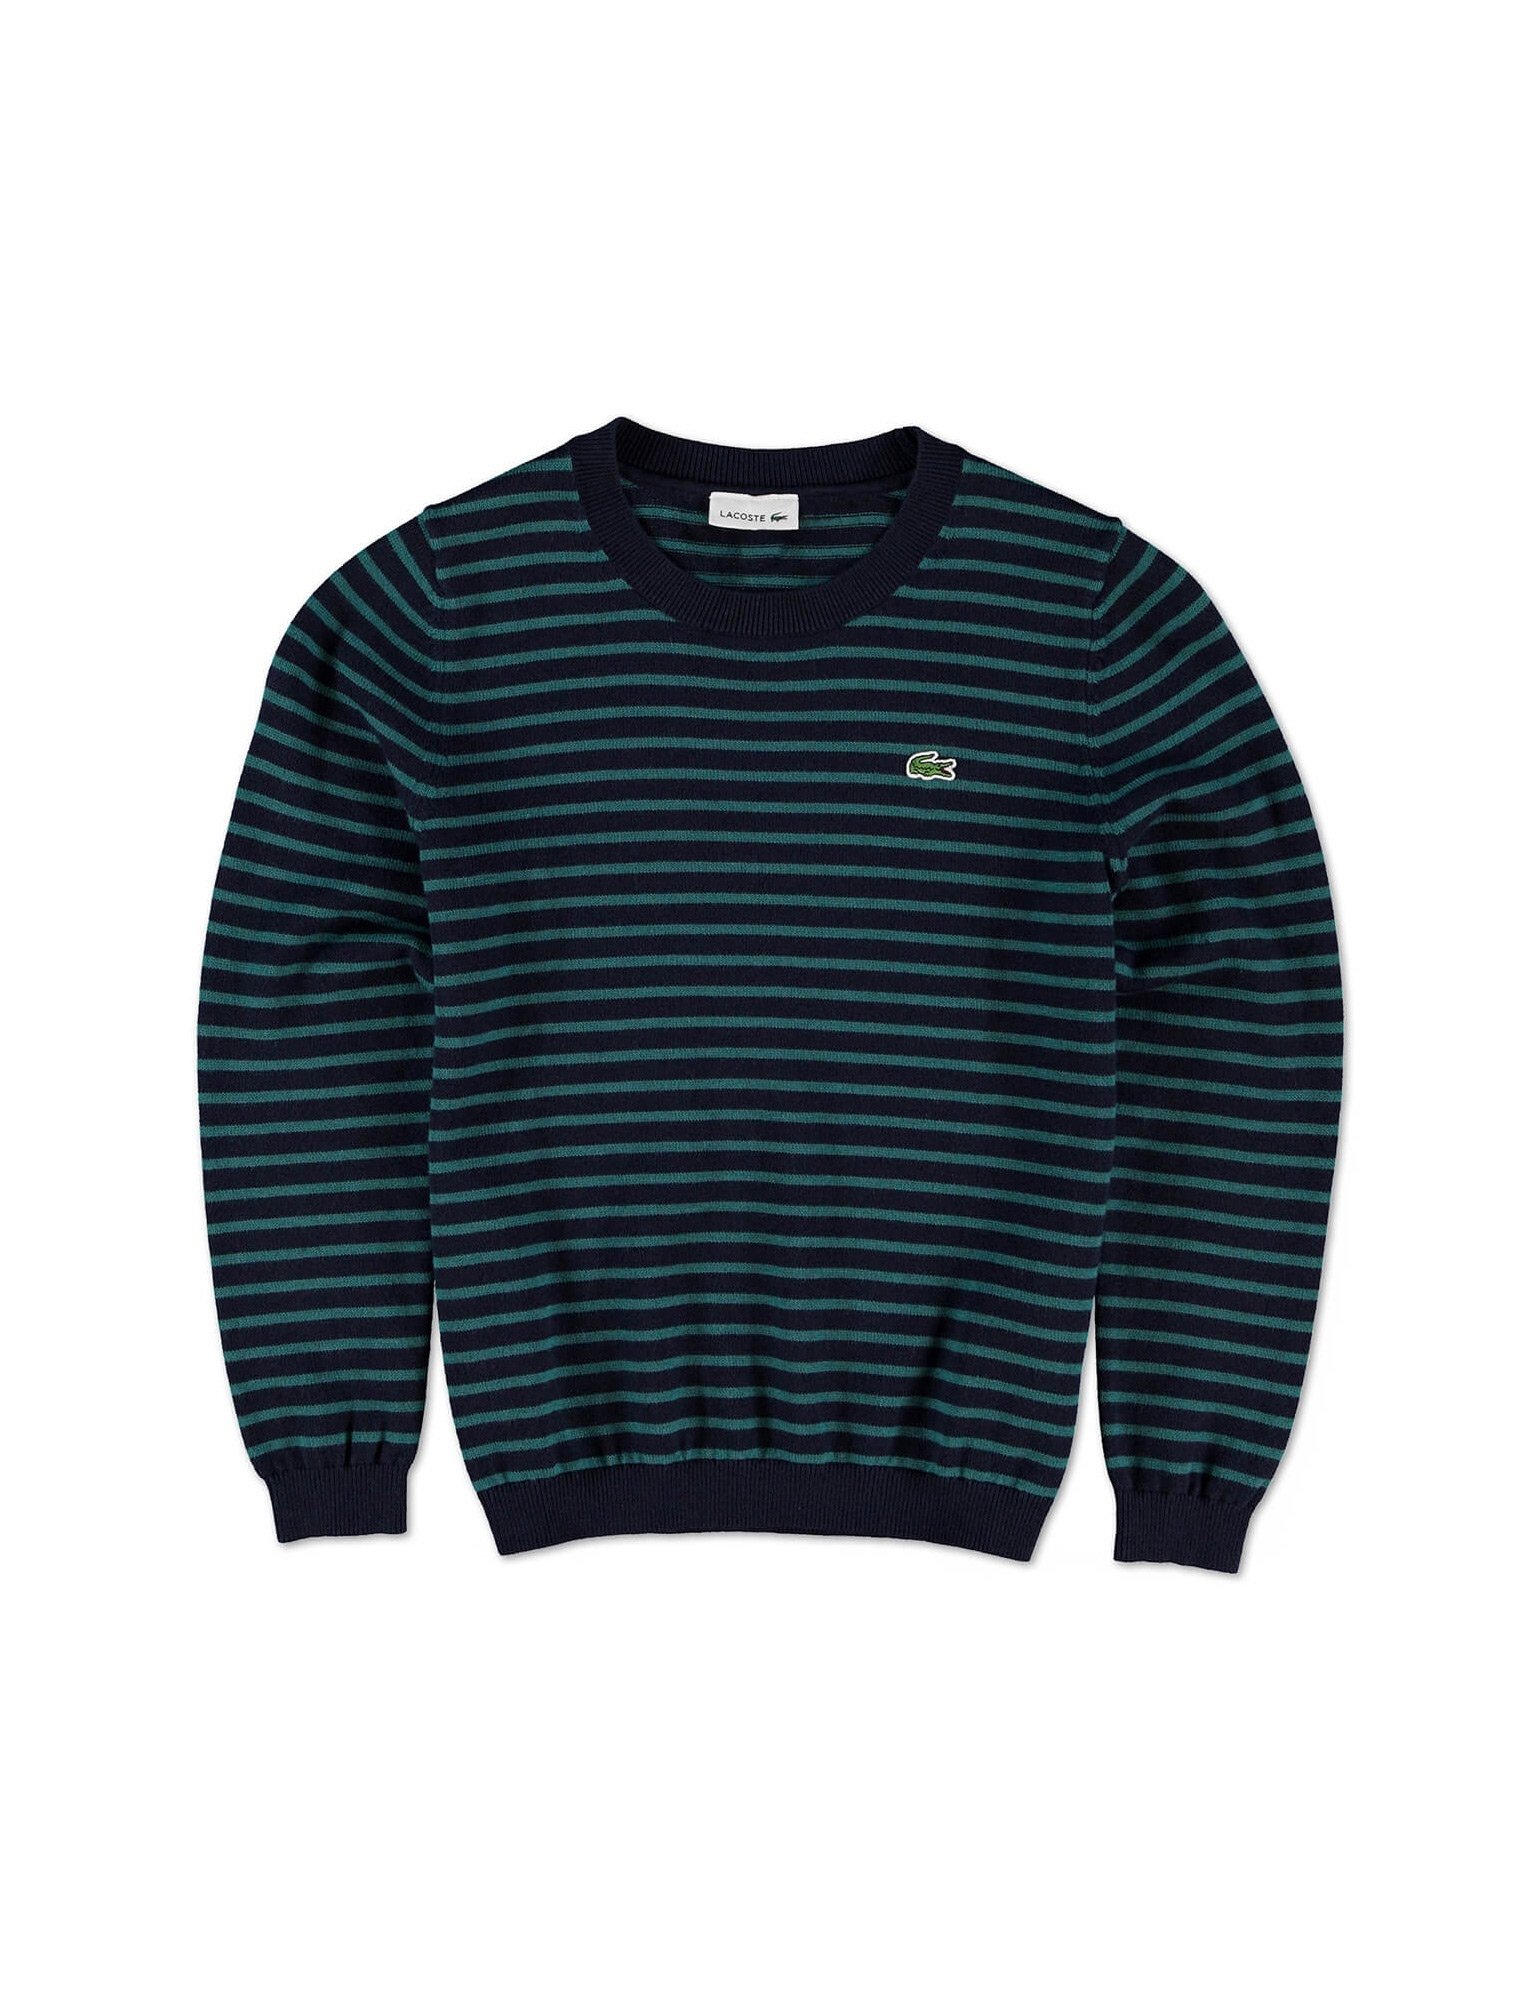 Lacoste Boy's Navy Striped Sweater in Size 8 Years (128 cm) Navy